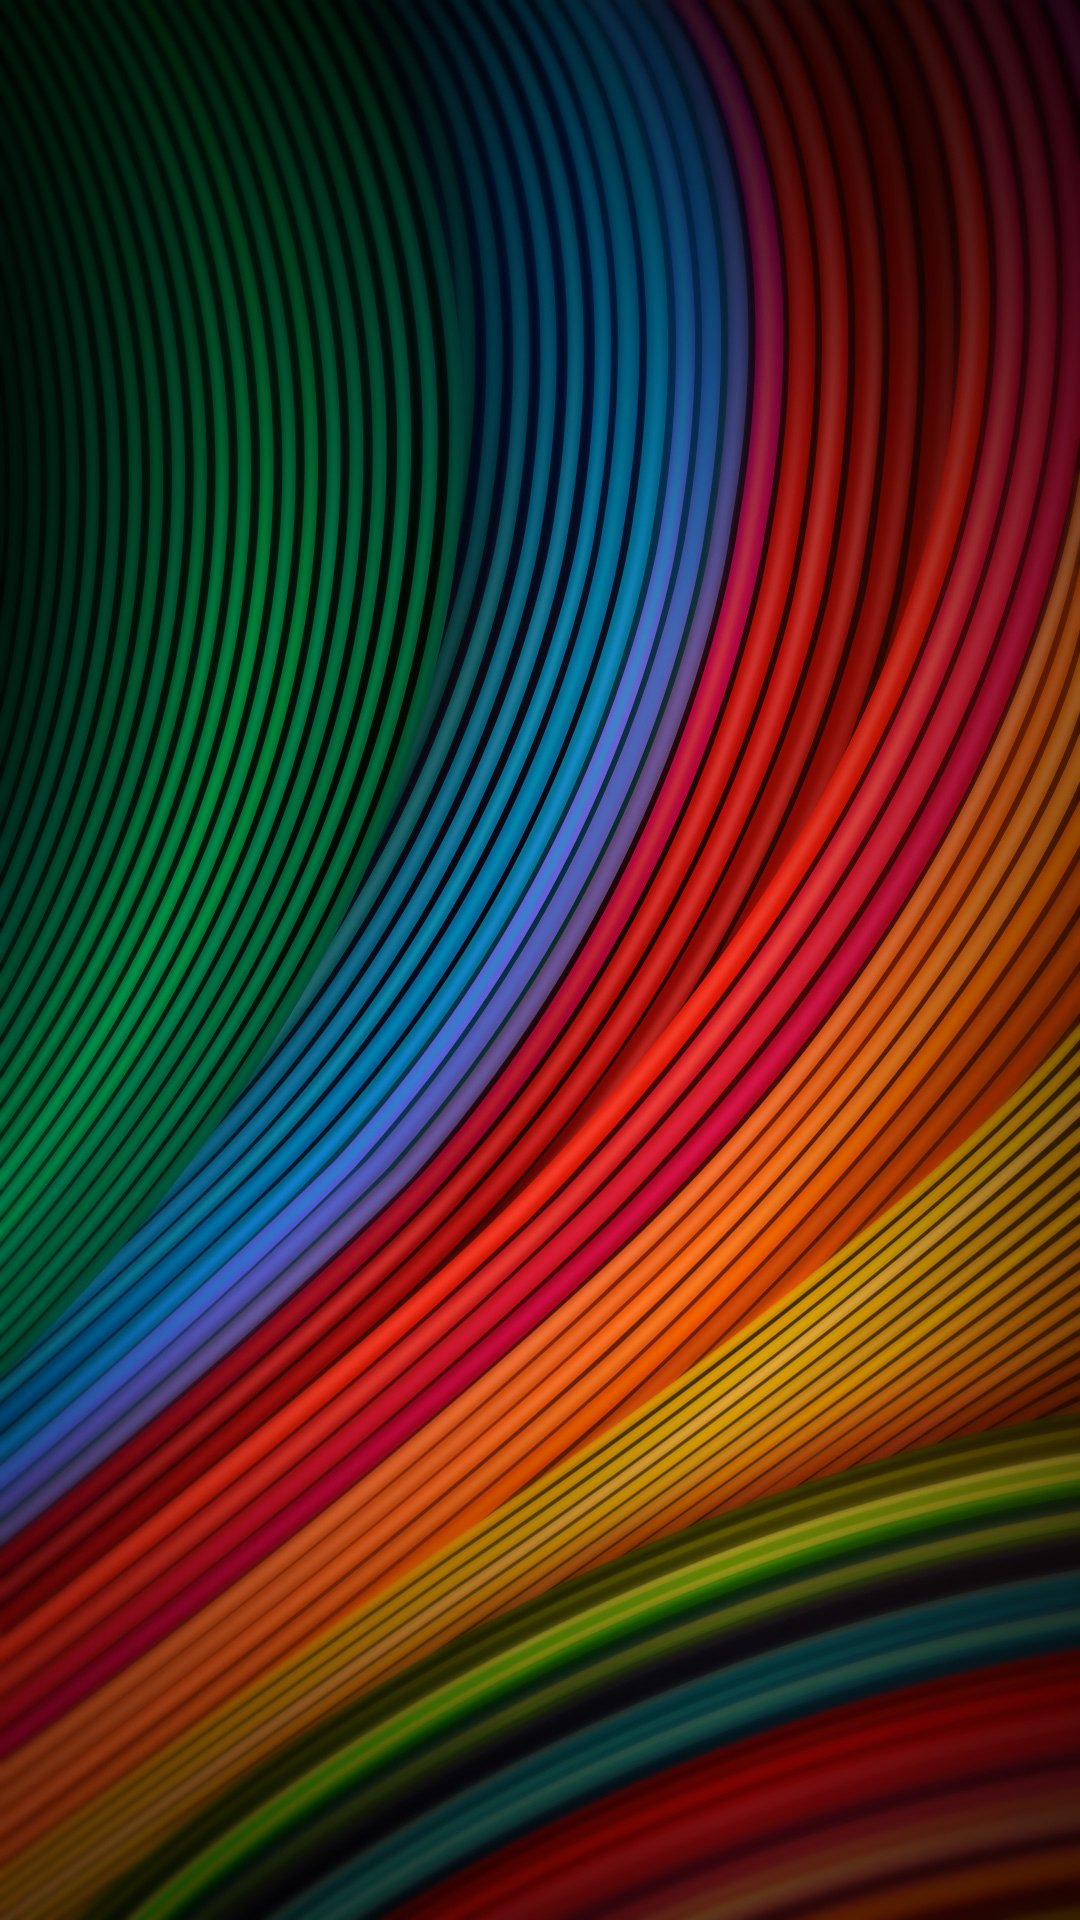 49 Stock Android Wallpaper On Wallpapersafari